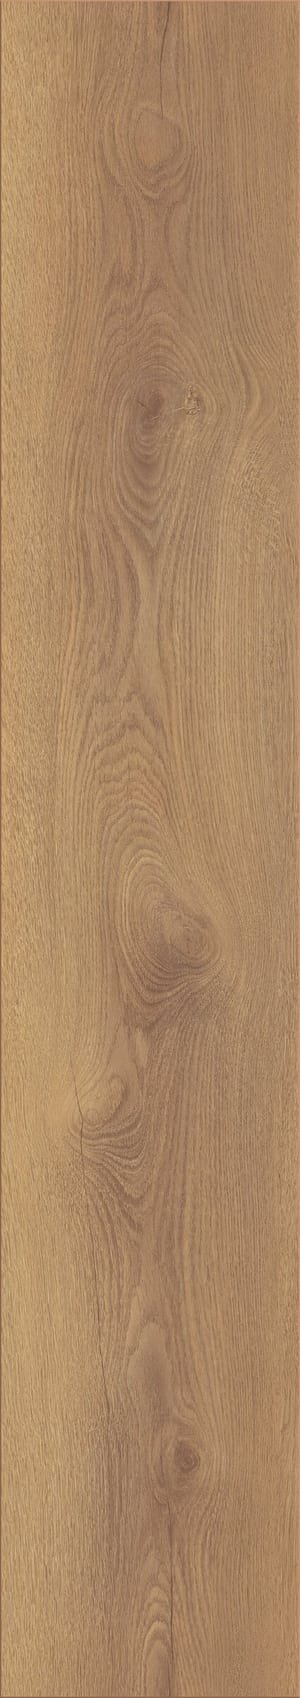 Swiss-Noblesse 8 mm, Rovere Classico